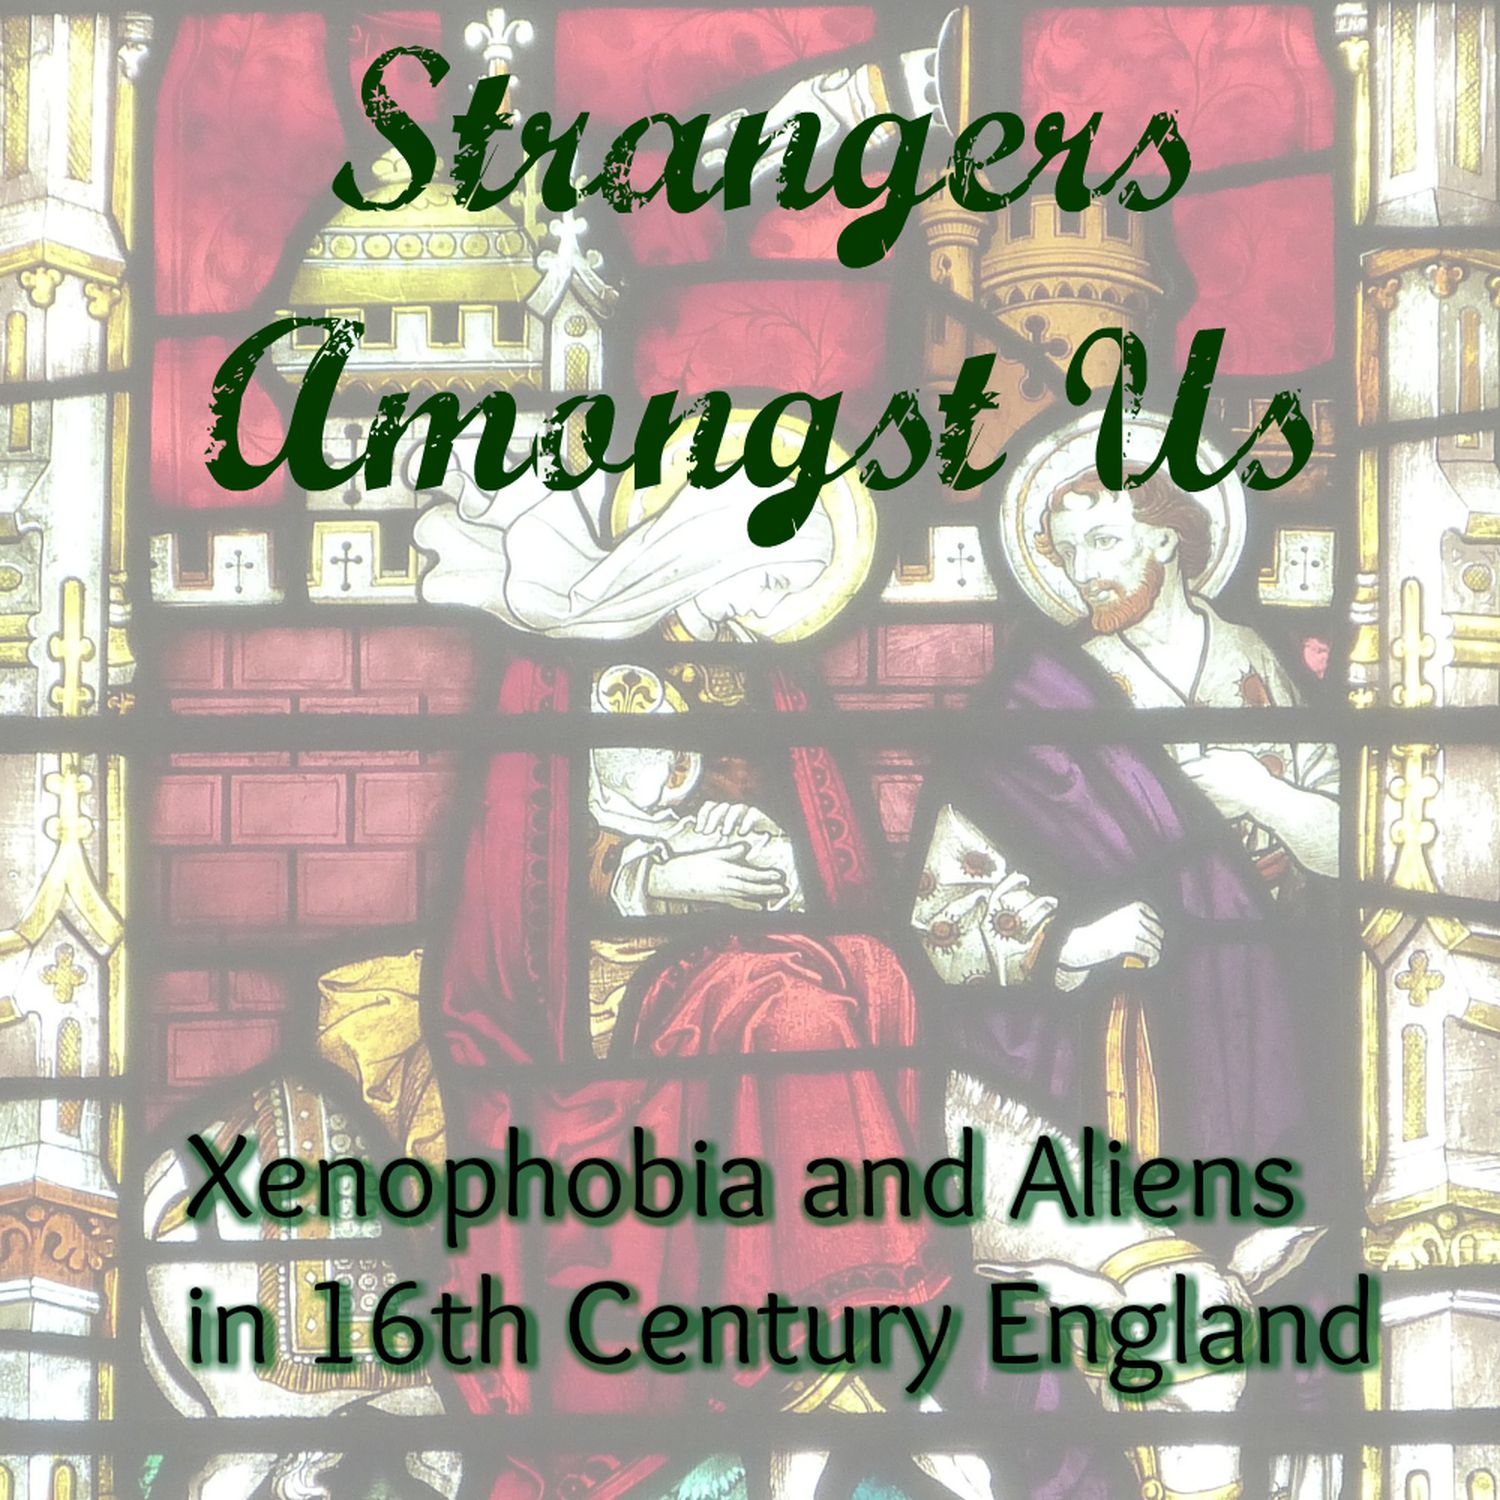 Episode 058: Strangers Amongst Us: Aliens and Xenophobia in Elizabethan England